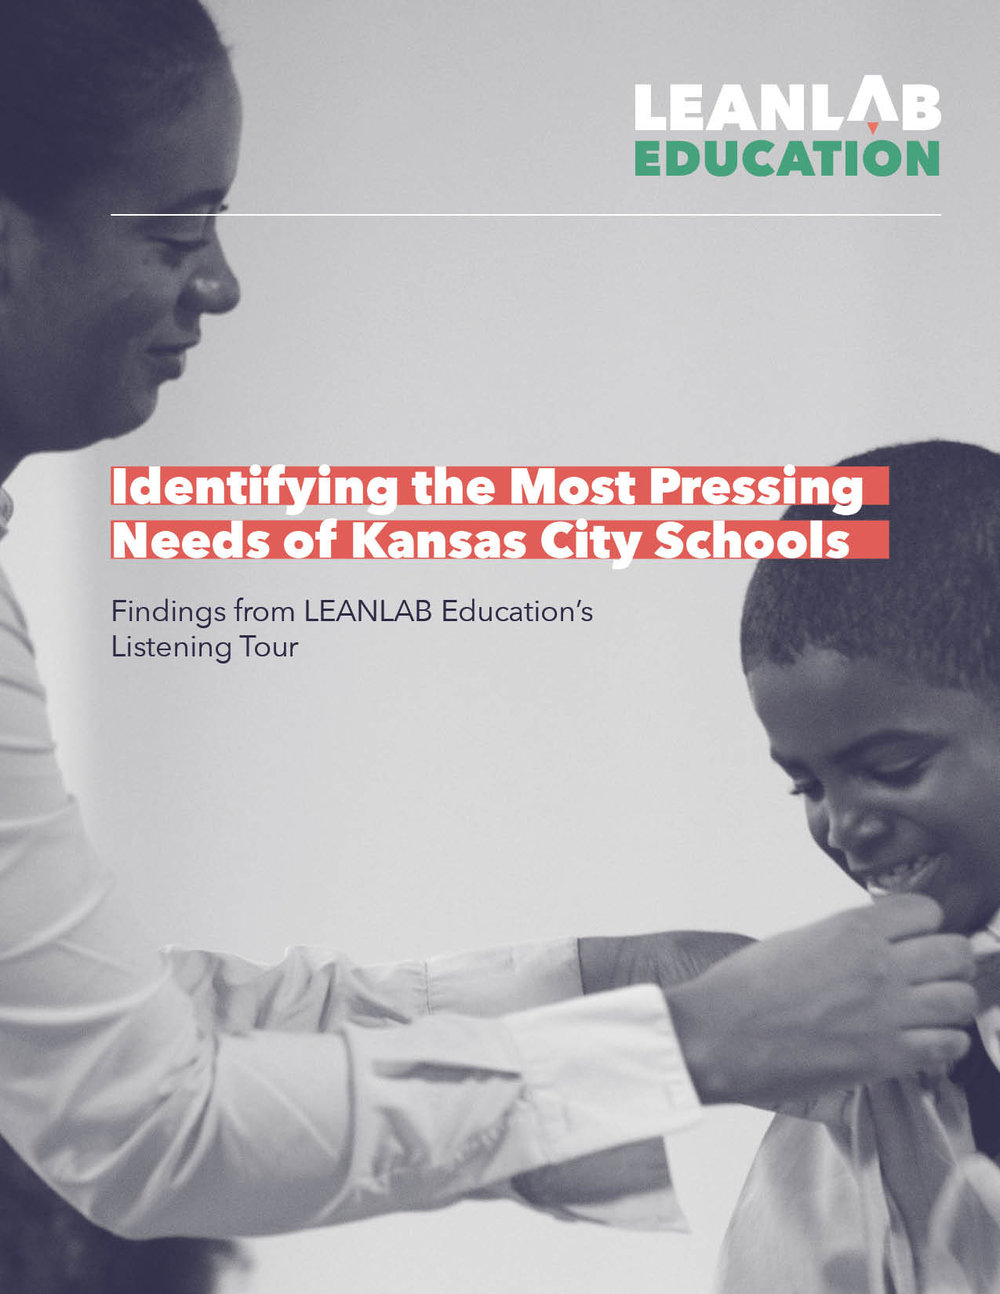 Identifying the Most Pressing Needs of Kansas City Schools